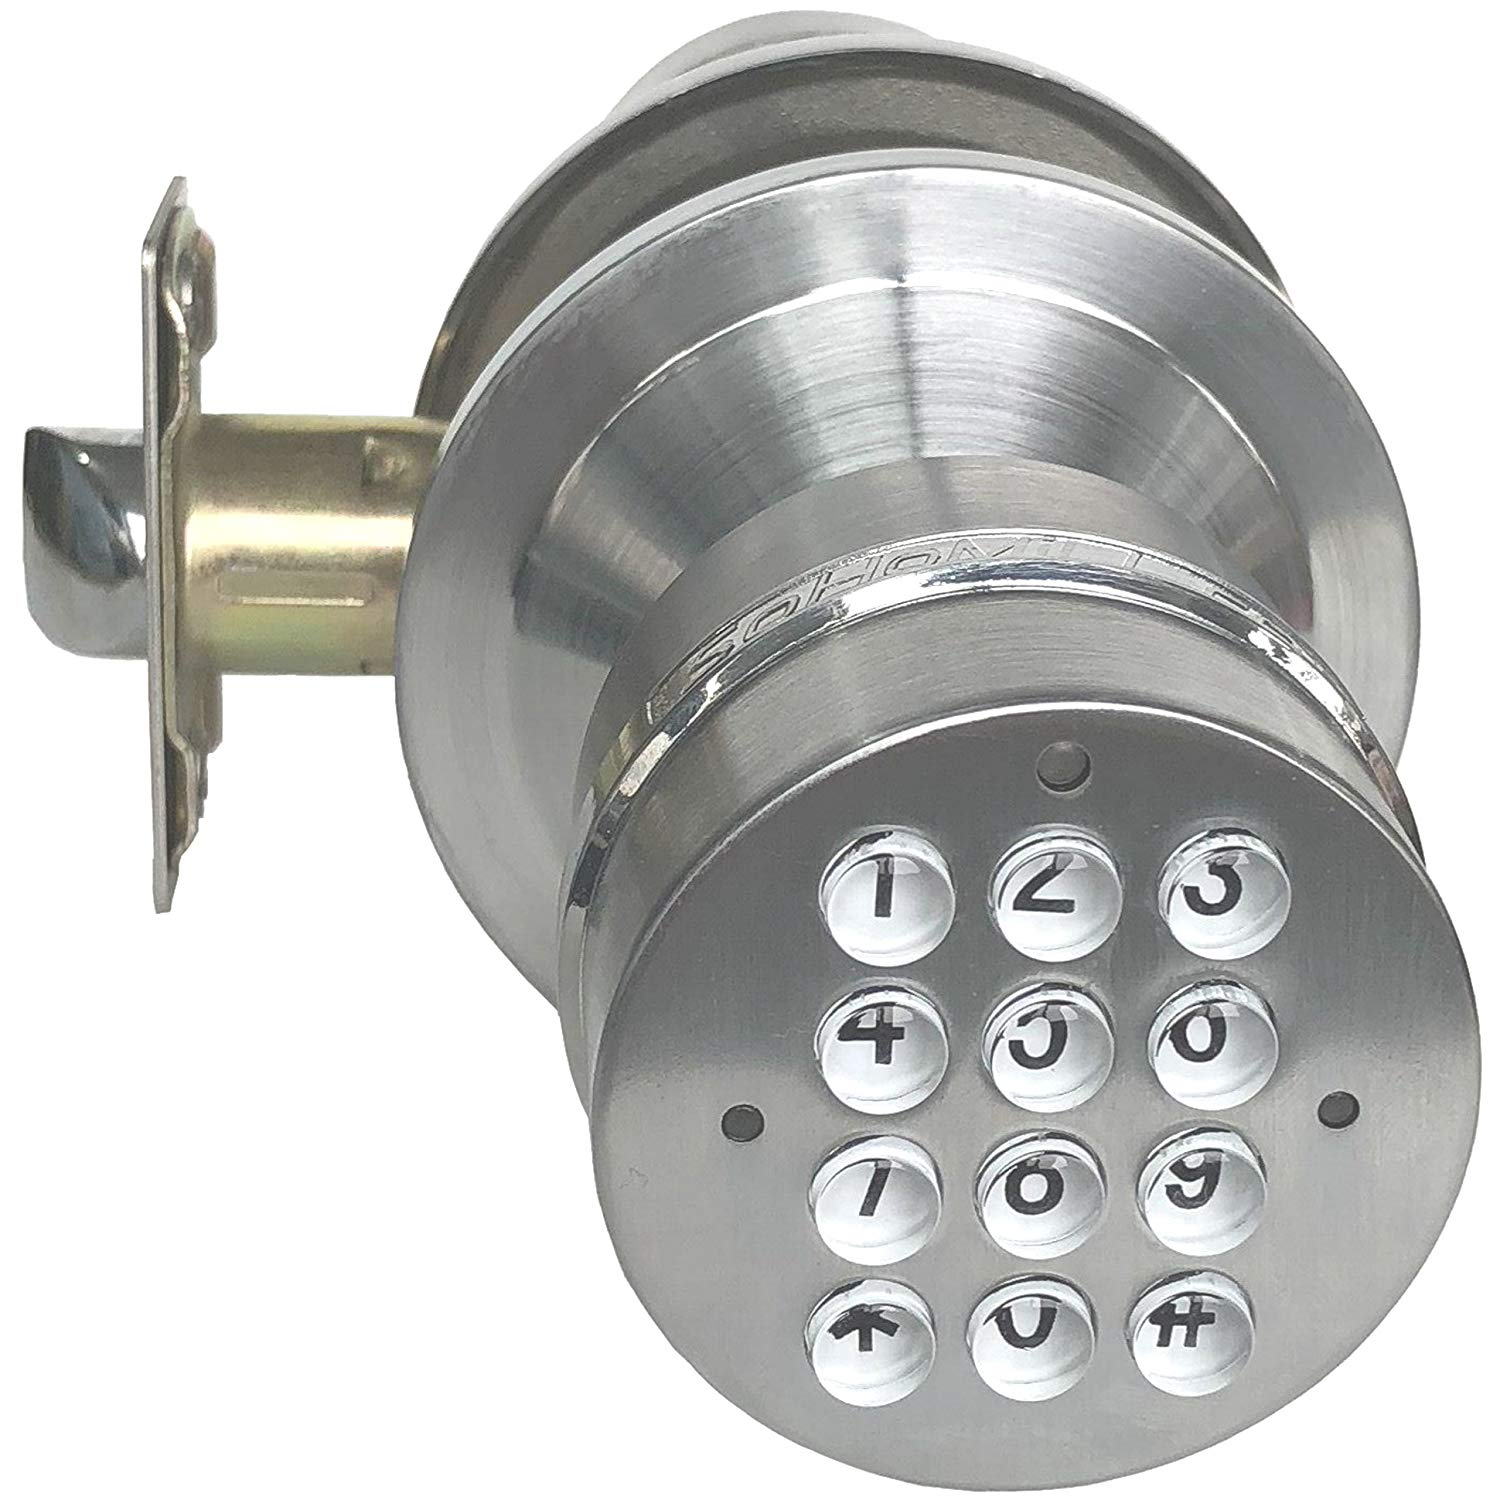 SoHoMill Door Lock